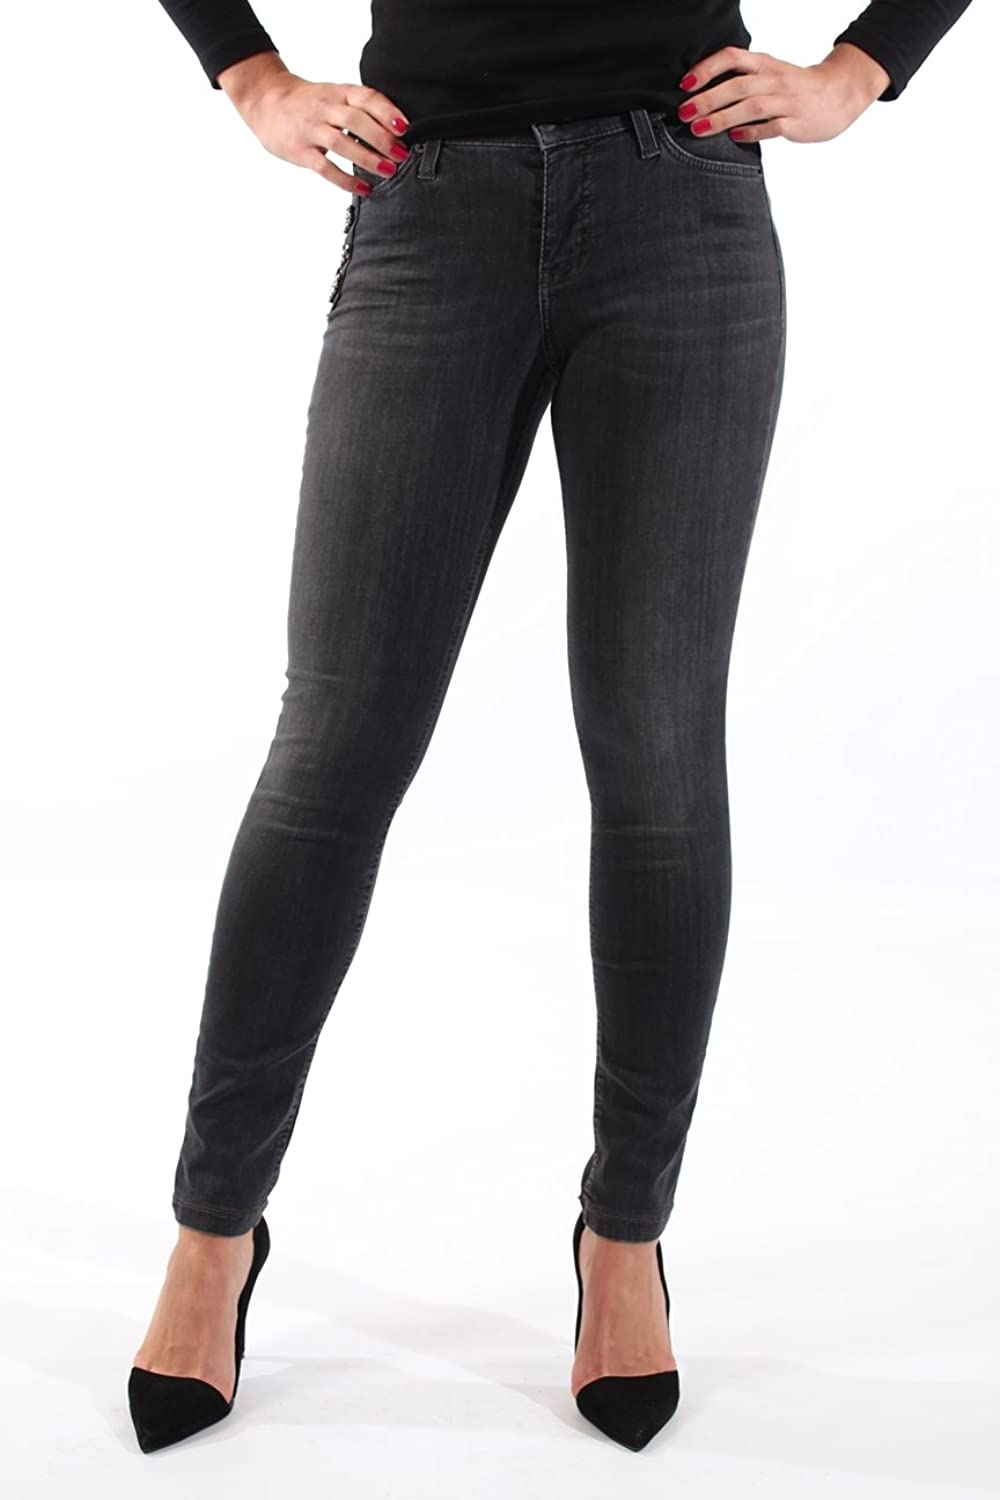 MCA Women's Maternity Jeans